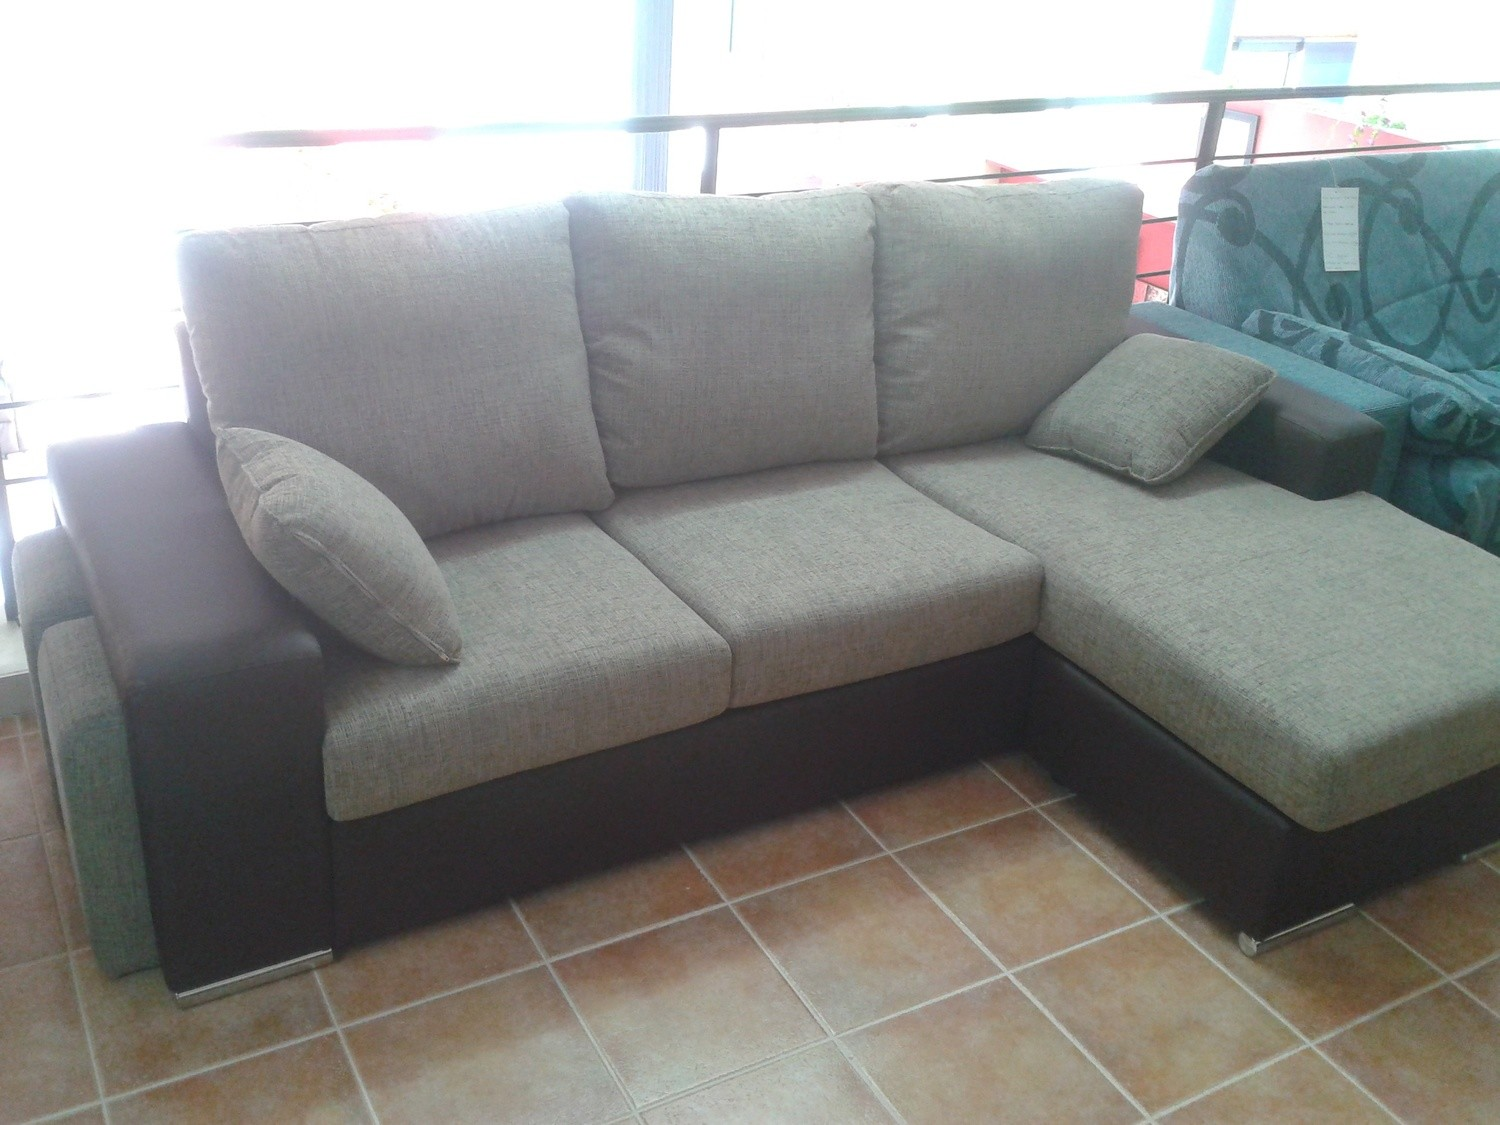 Muebles Sebe Sofa Chaiselongue De 245 Cm